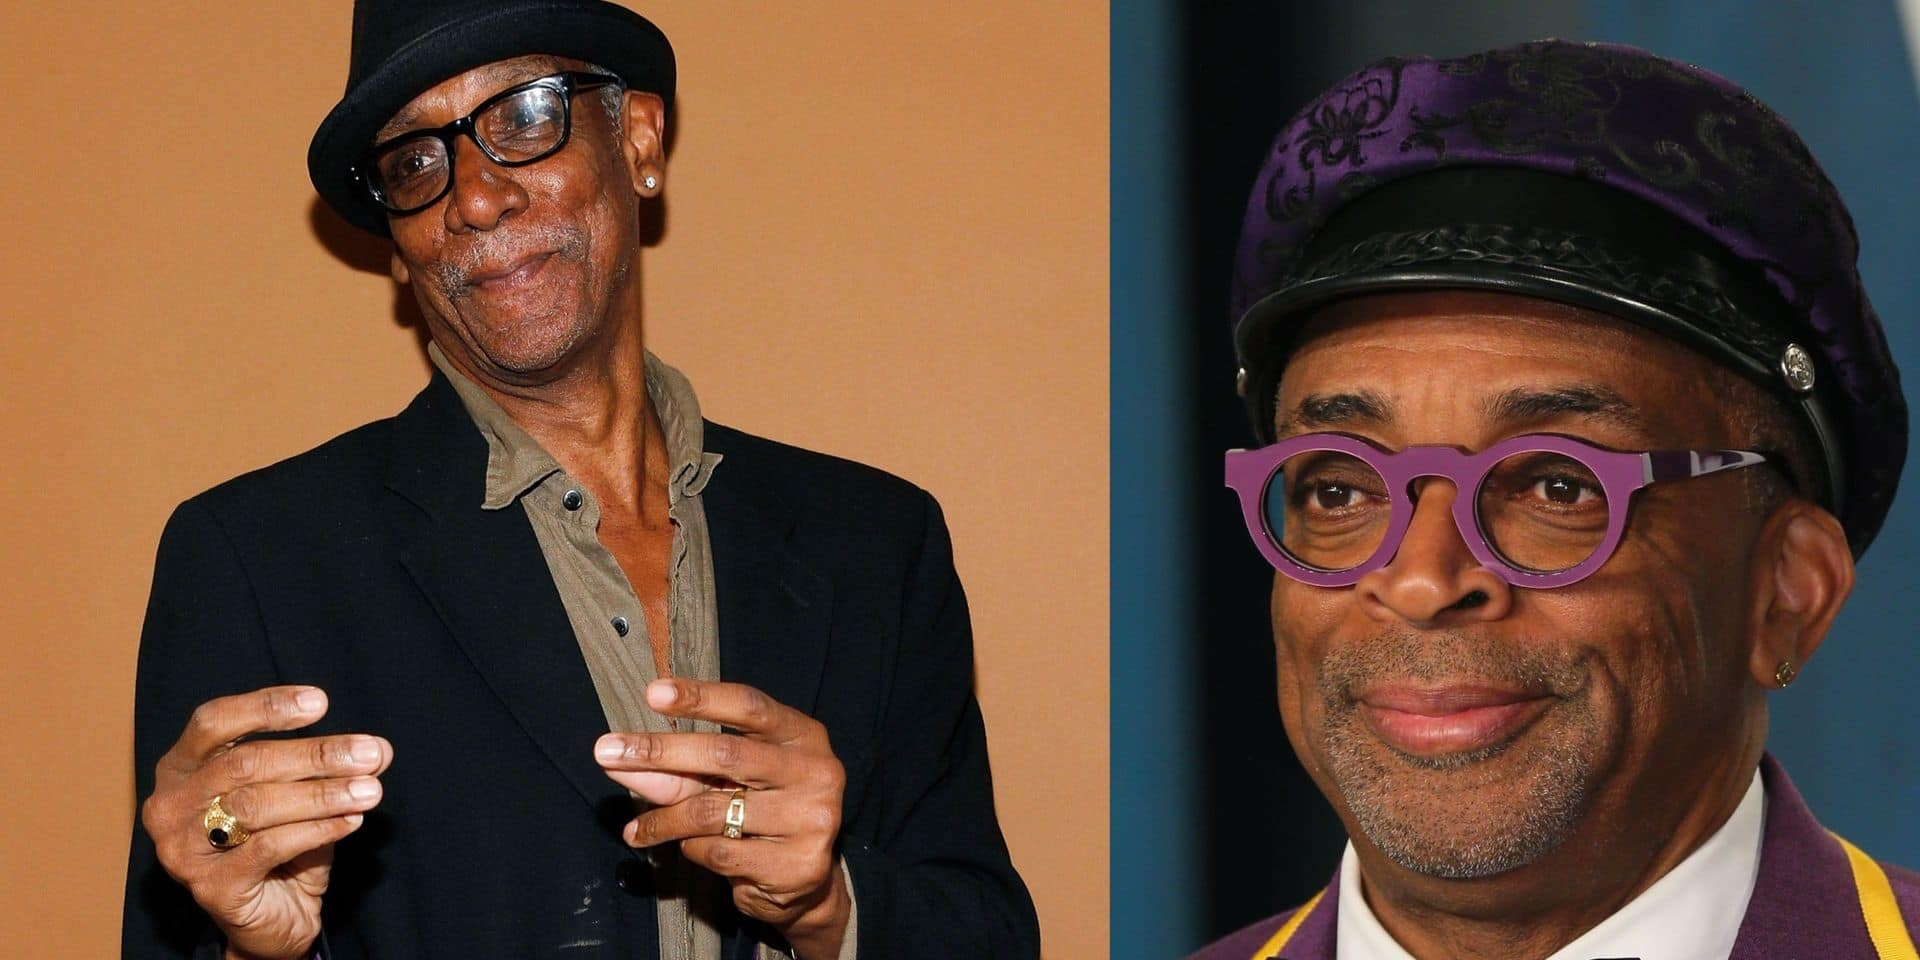 Thomas Jefferson Byrd, l'acteur de Spike Lee, a été abattu